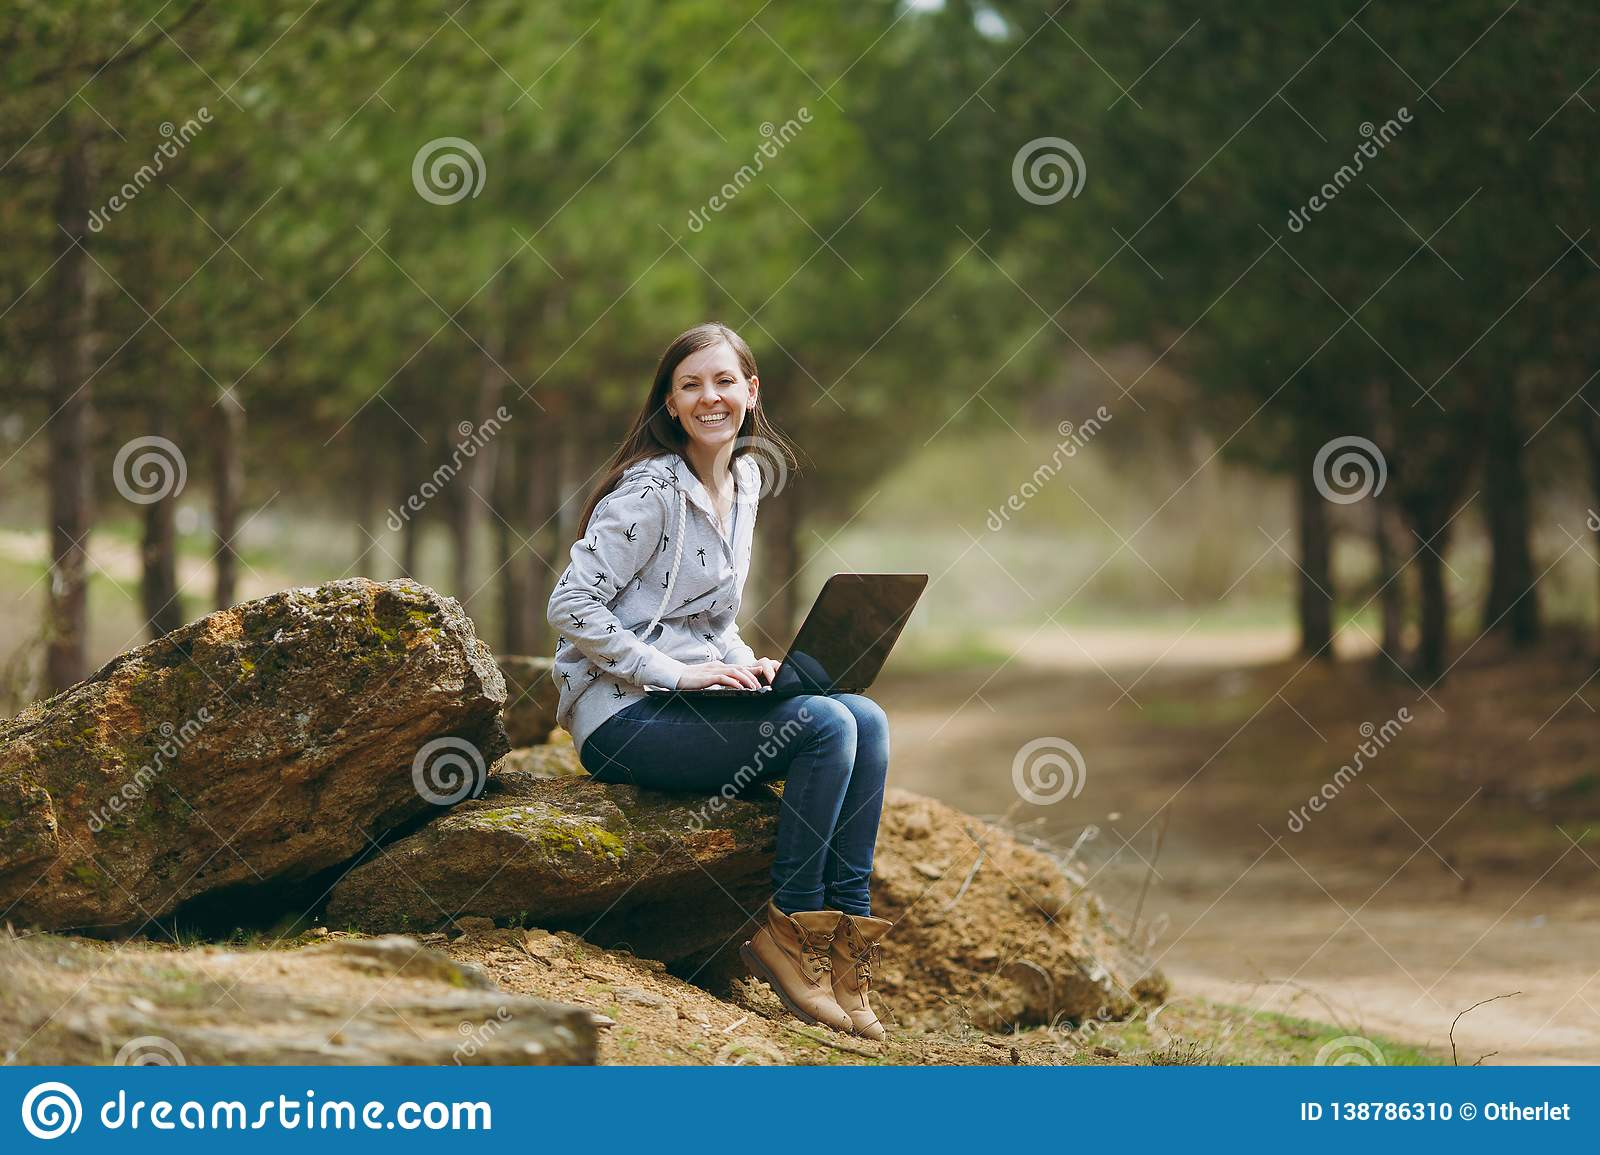 Young laughing successful smart business woman or student in casual clothes sitting on stone using laptop in city park